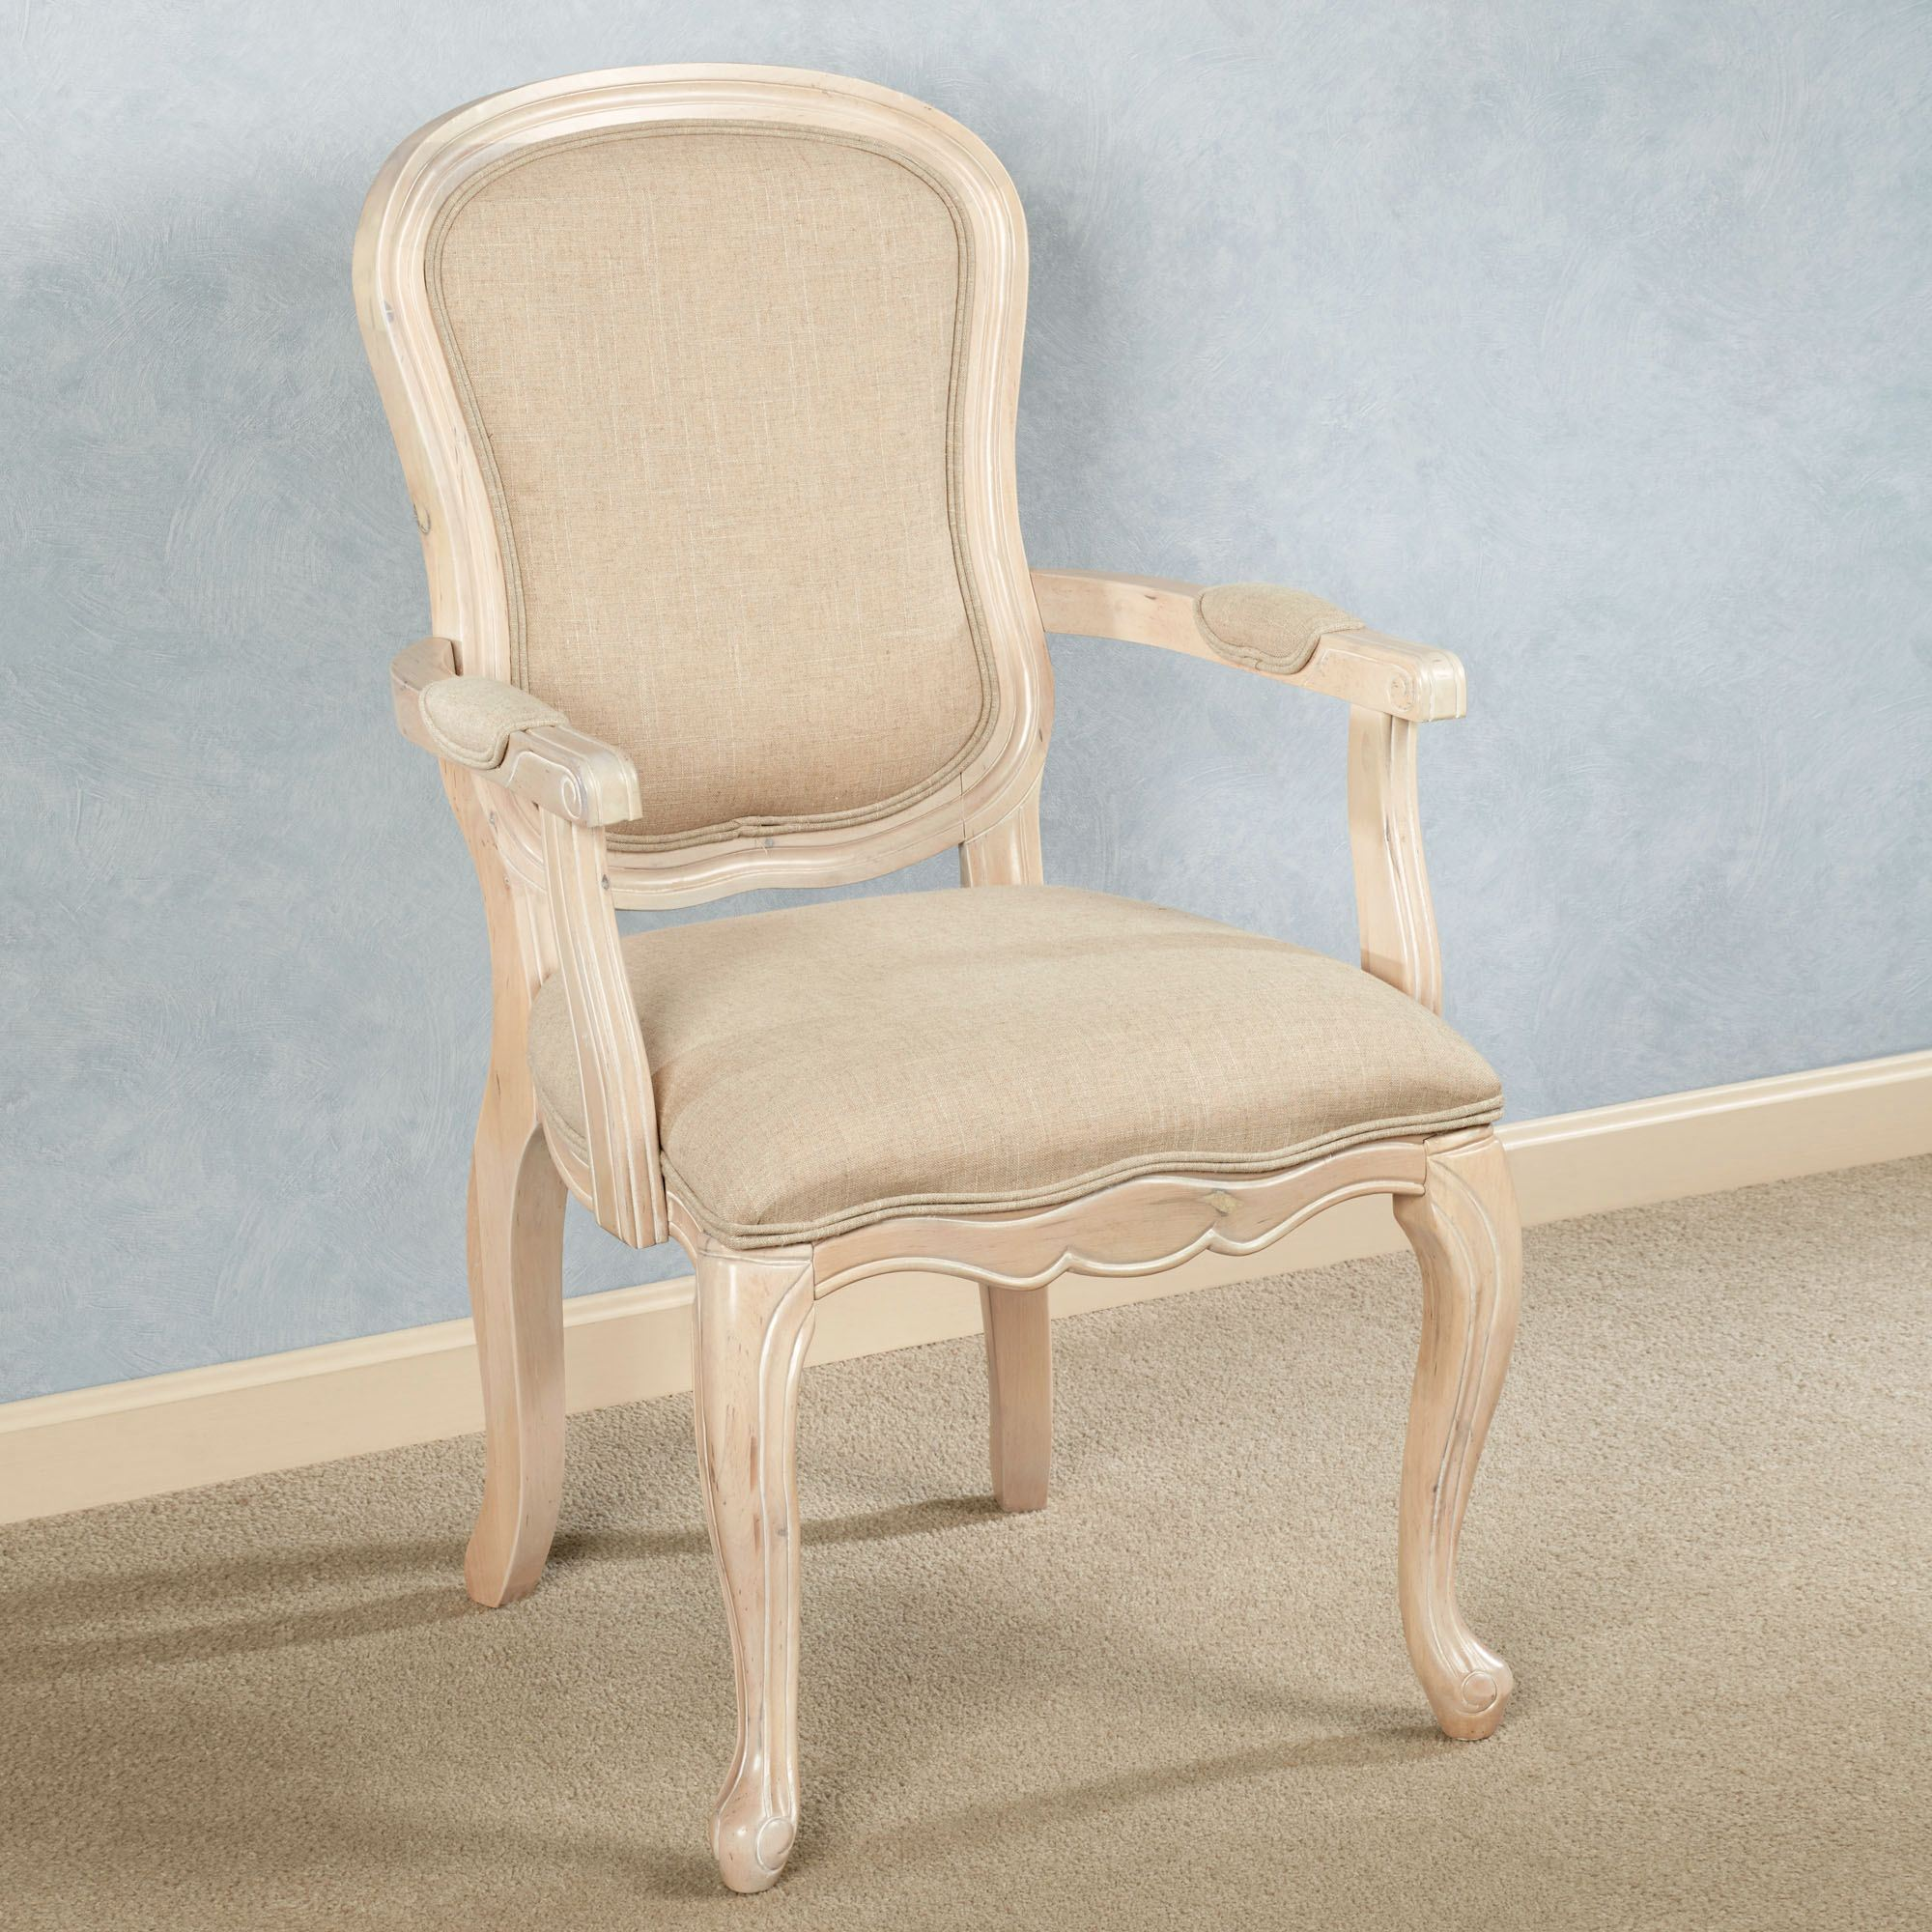 wood frame accent chairs. Evelyn Accent Chair Antique White. Click To Expand Wood Frame Chairs